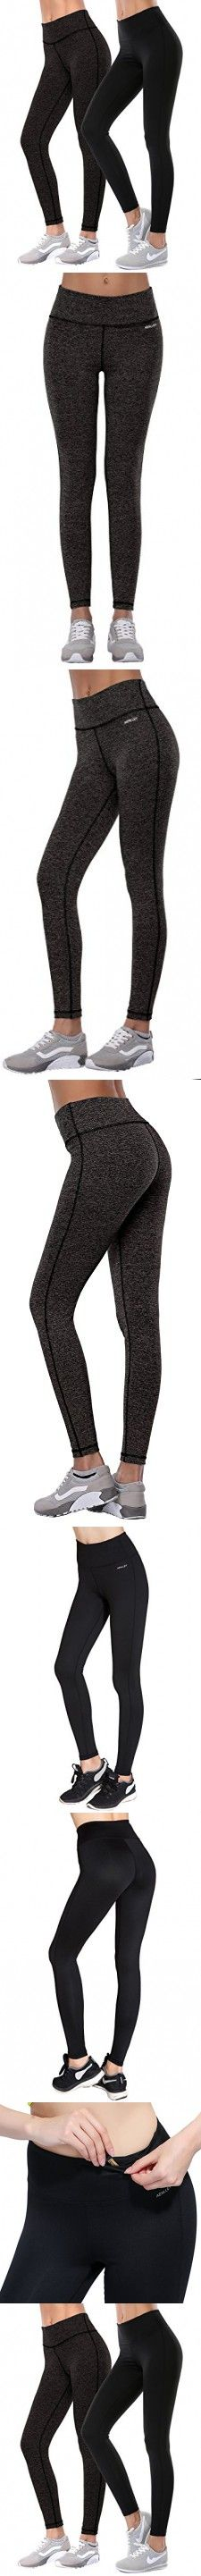 Aenlley Women's Activewear Yoga Pants High Rise Workout Gym Spanx Tights leggings Color Black Size XS